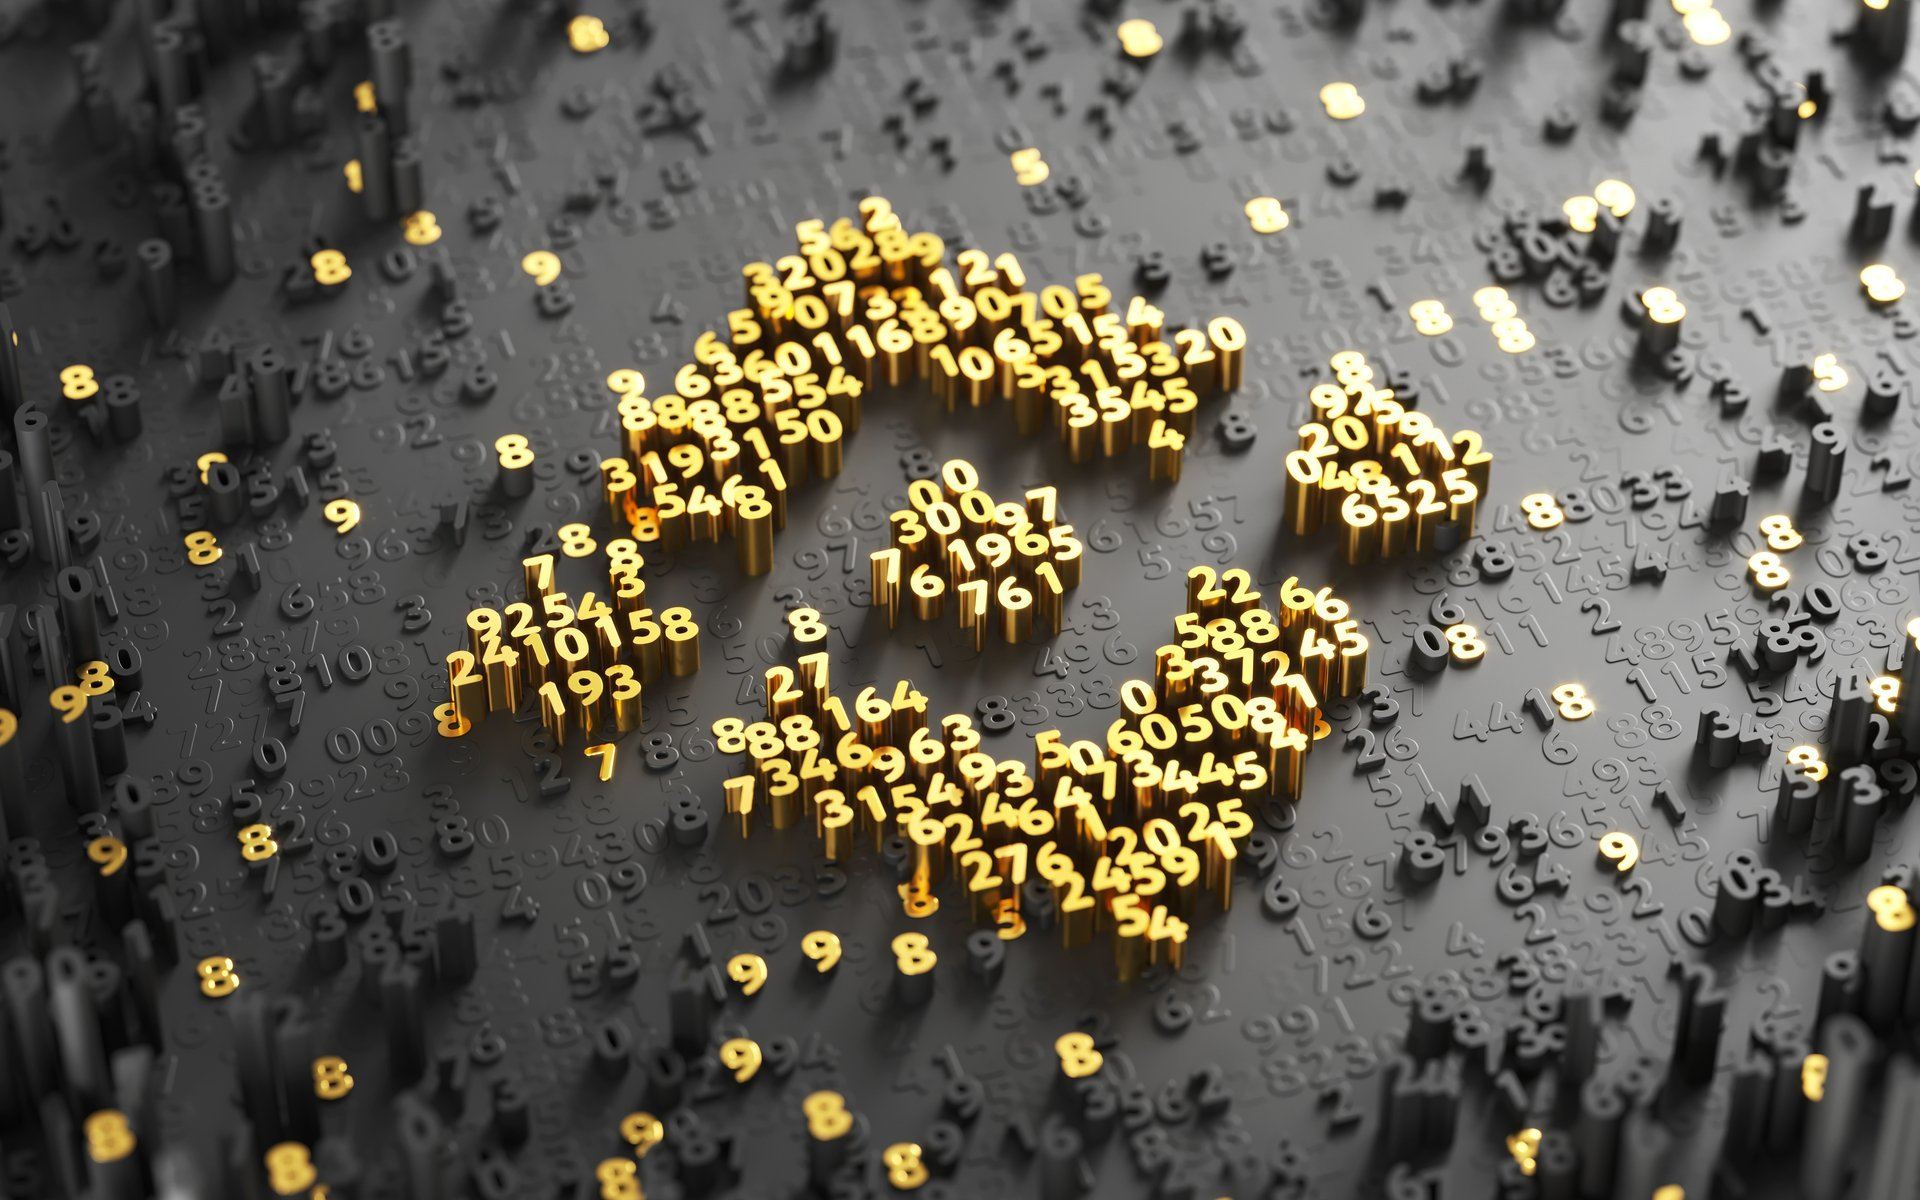 Binance Partners With Libra Credit To Offer Loans BNB Holders